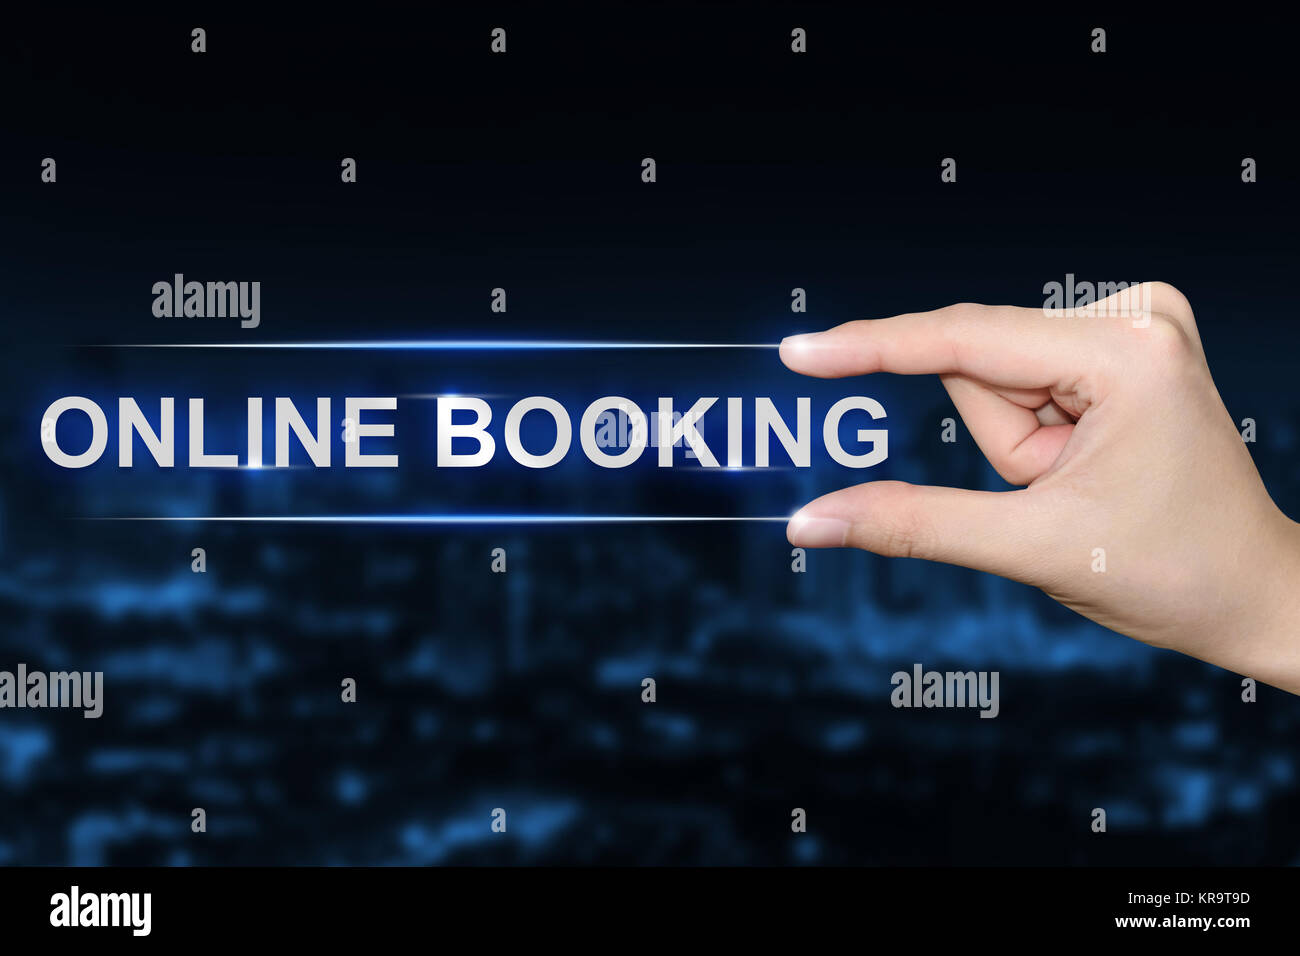 hand clicking online booking button - Stock Image